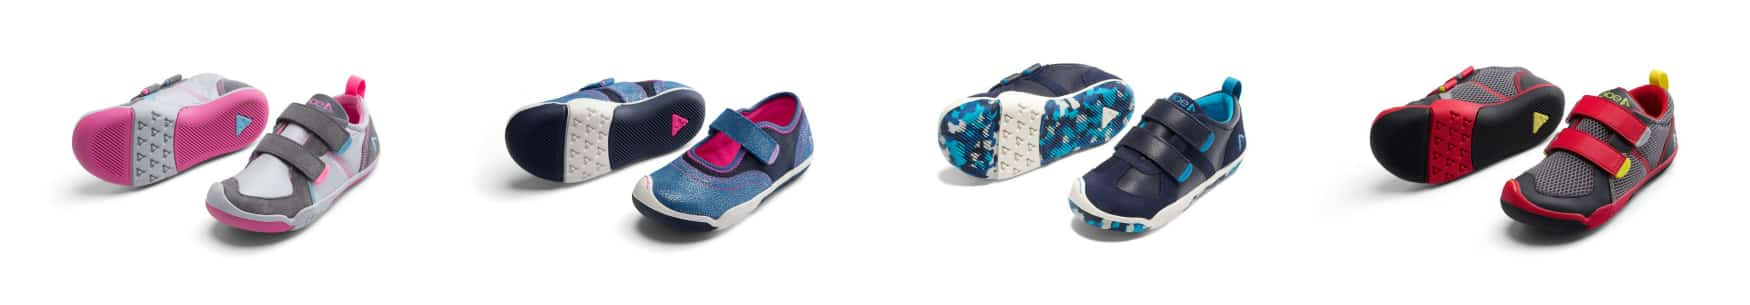 Plae Shoes Deal